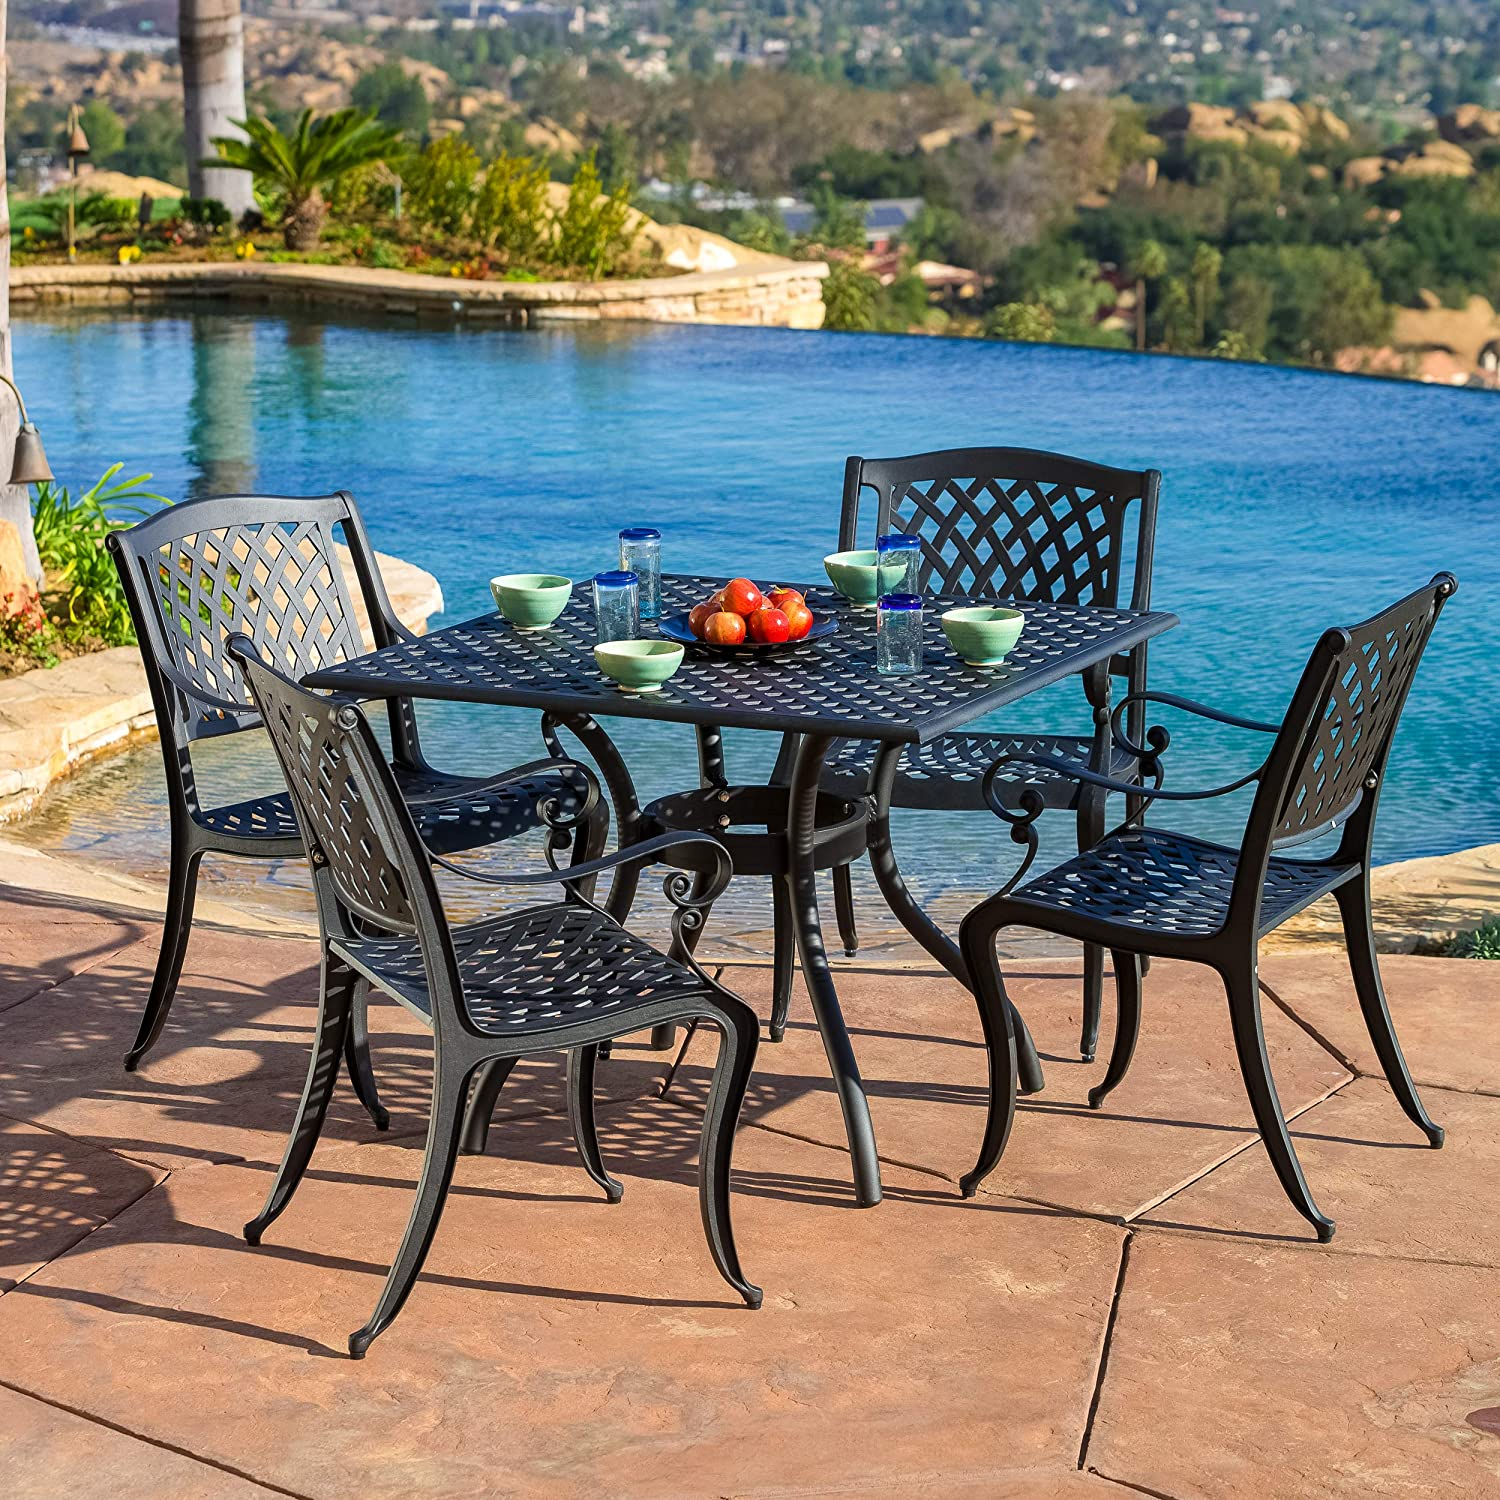 Marietta Outdoor Furniture Dining Set, Cast Aluminum Table and Chairs for Patio or Deck 5-Piece Set